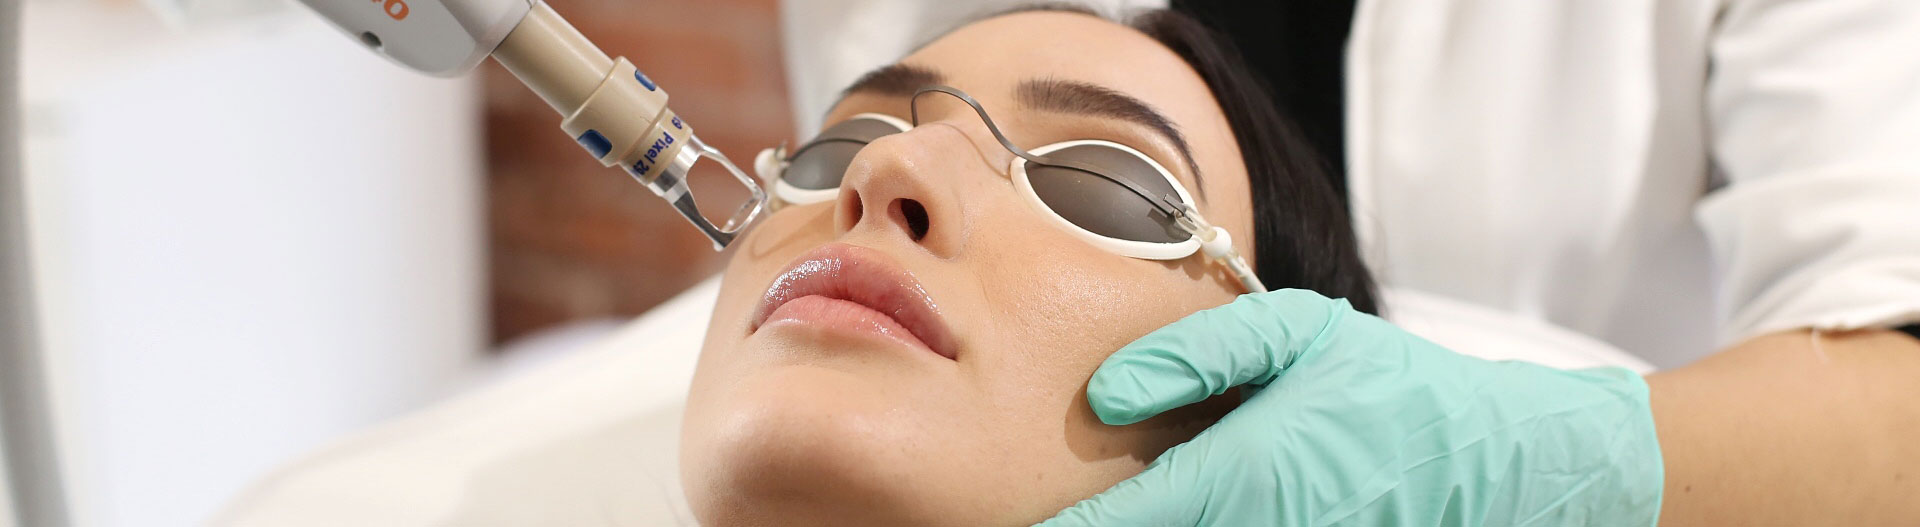 laser treatment for acne scar